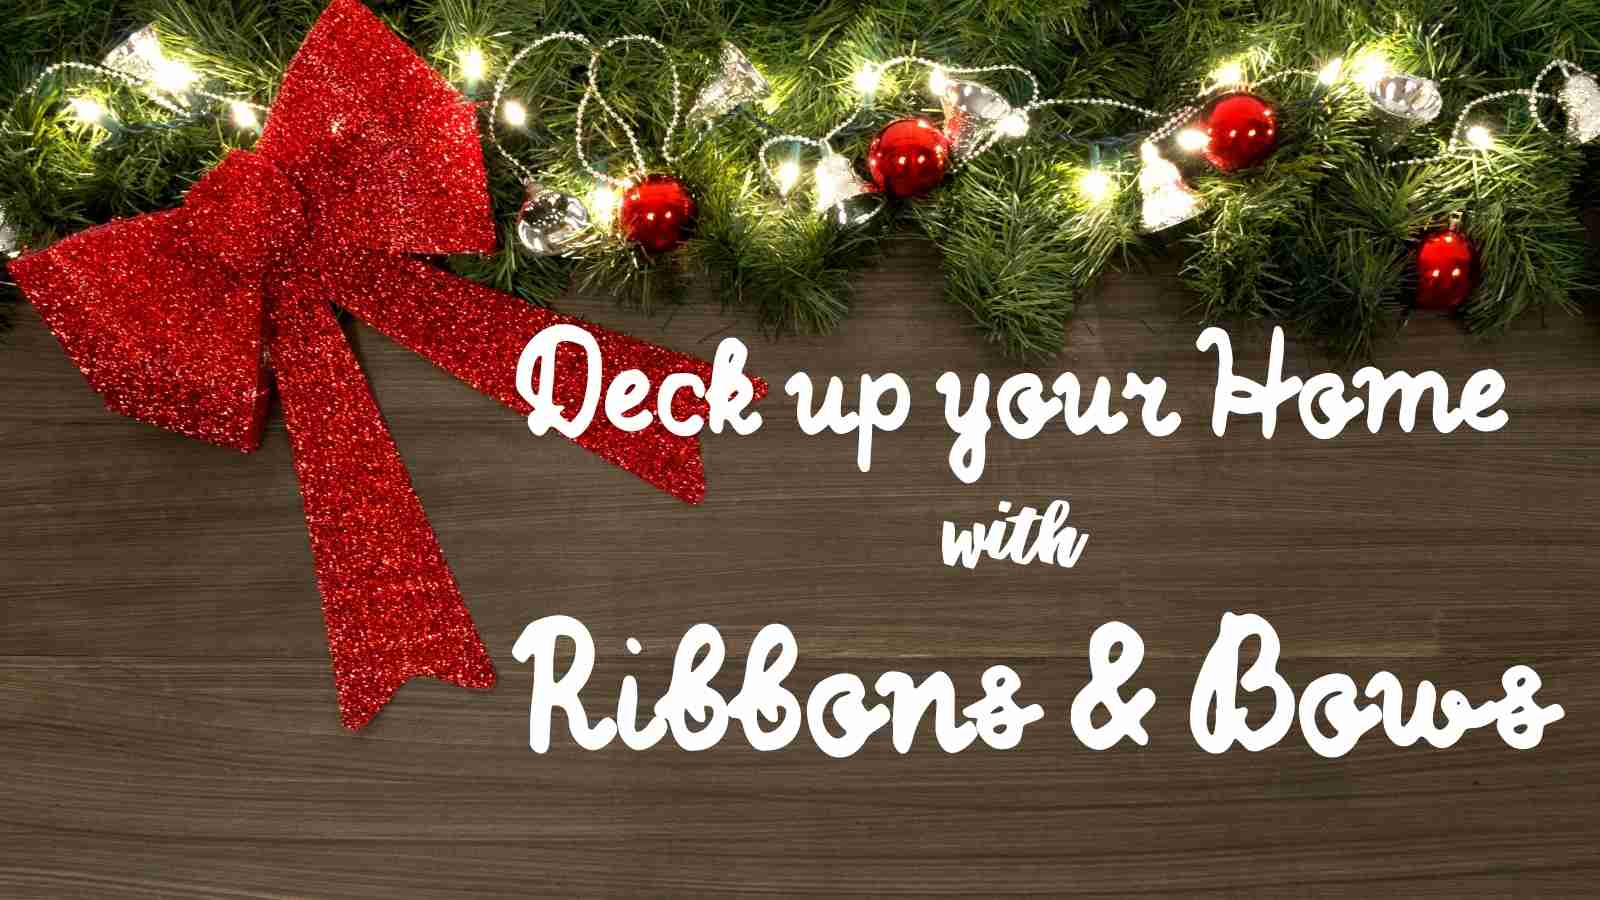 Decorating Christmas Tree With Ribbons And Bows These Ideas Might Be Just What You Need Glam Vapours